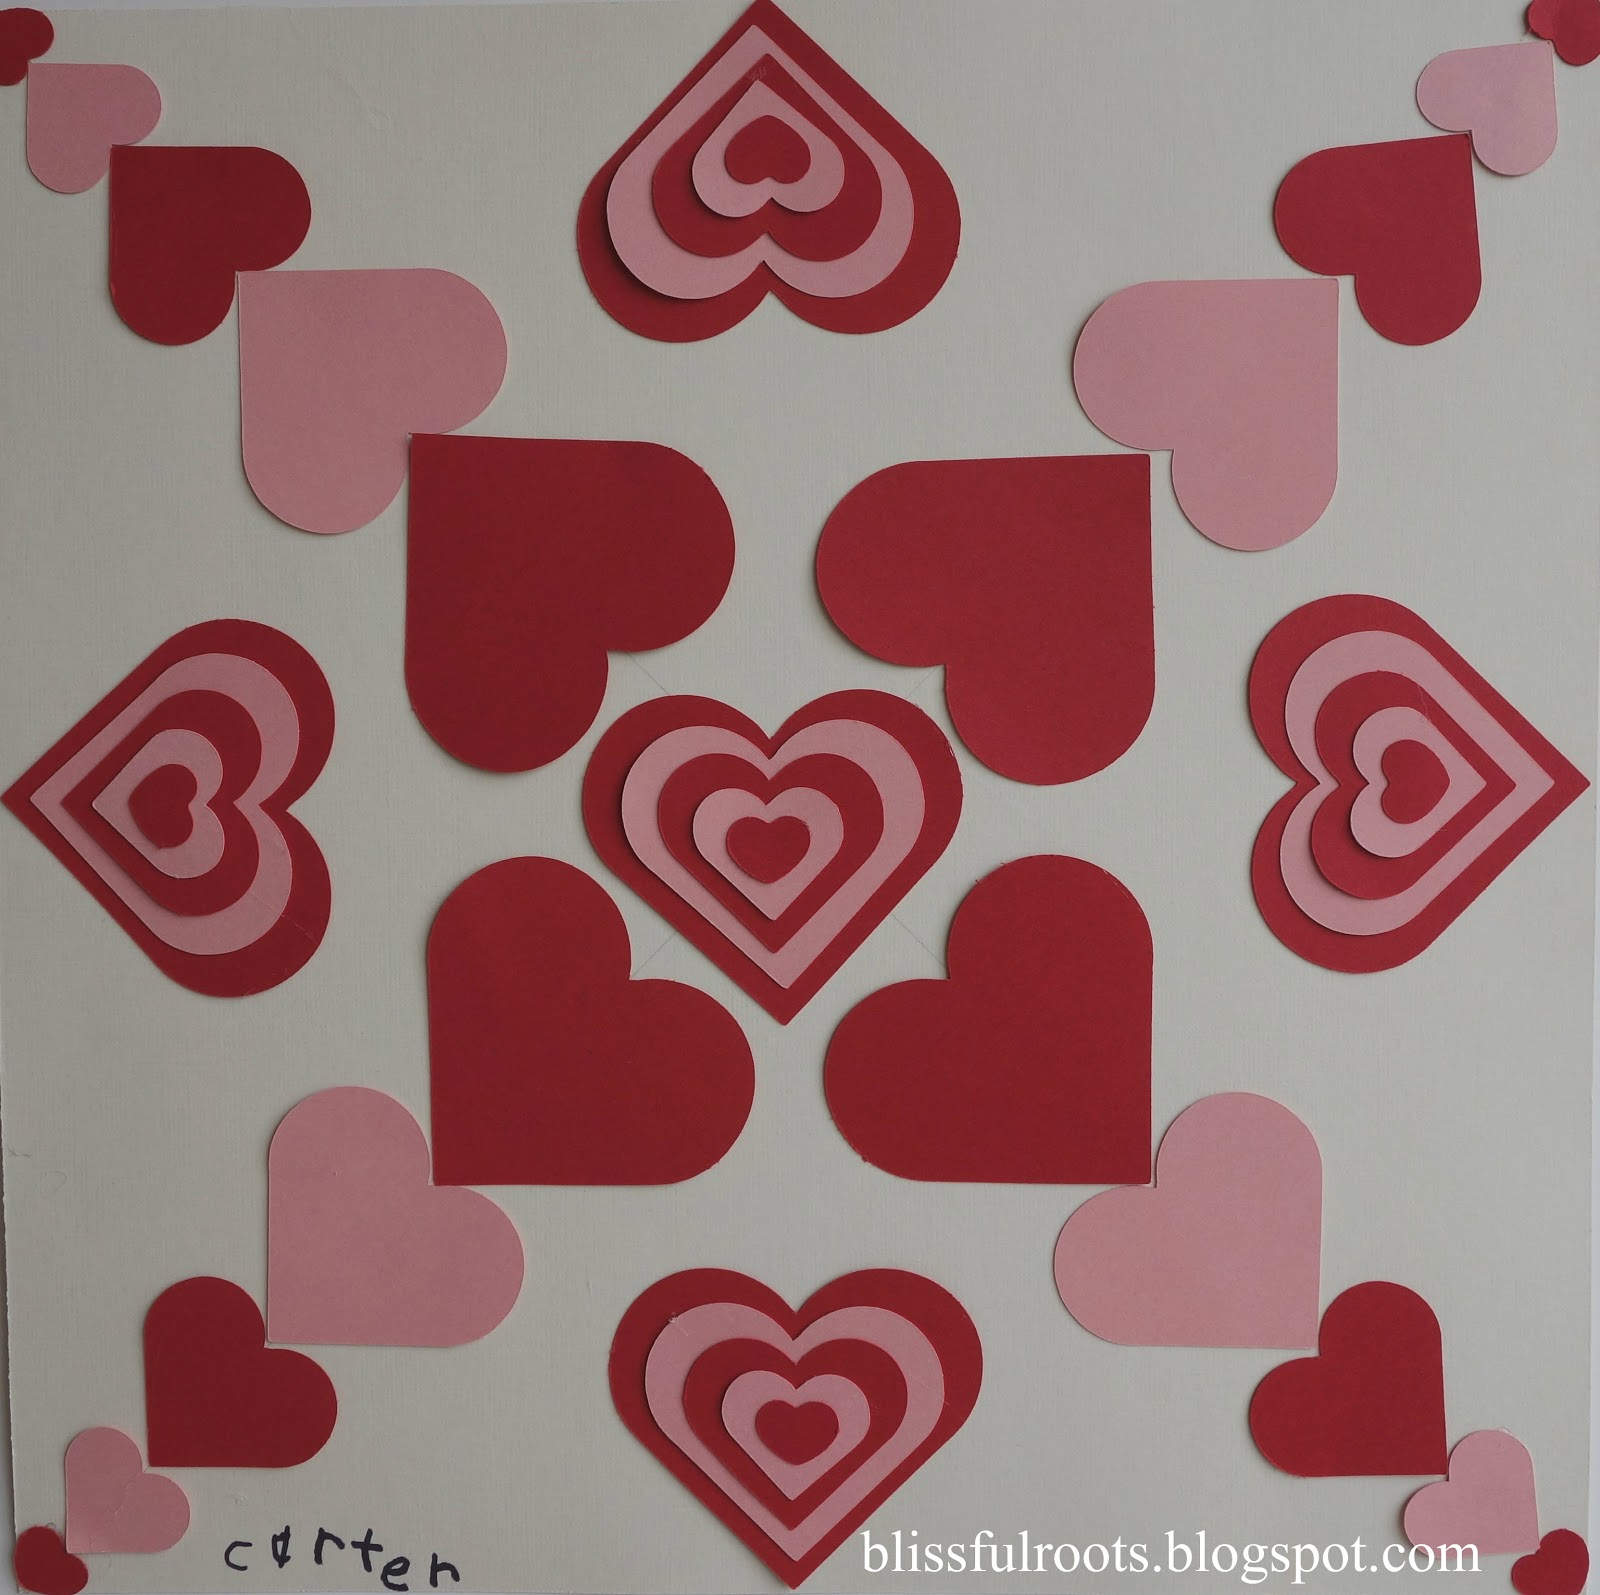 Blissful Roots Symmetrical Valentine Art Project